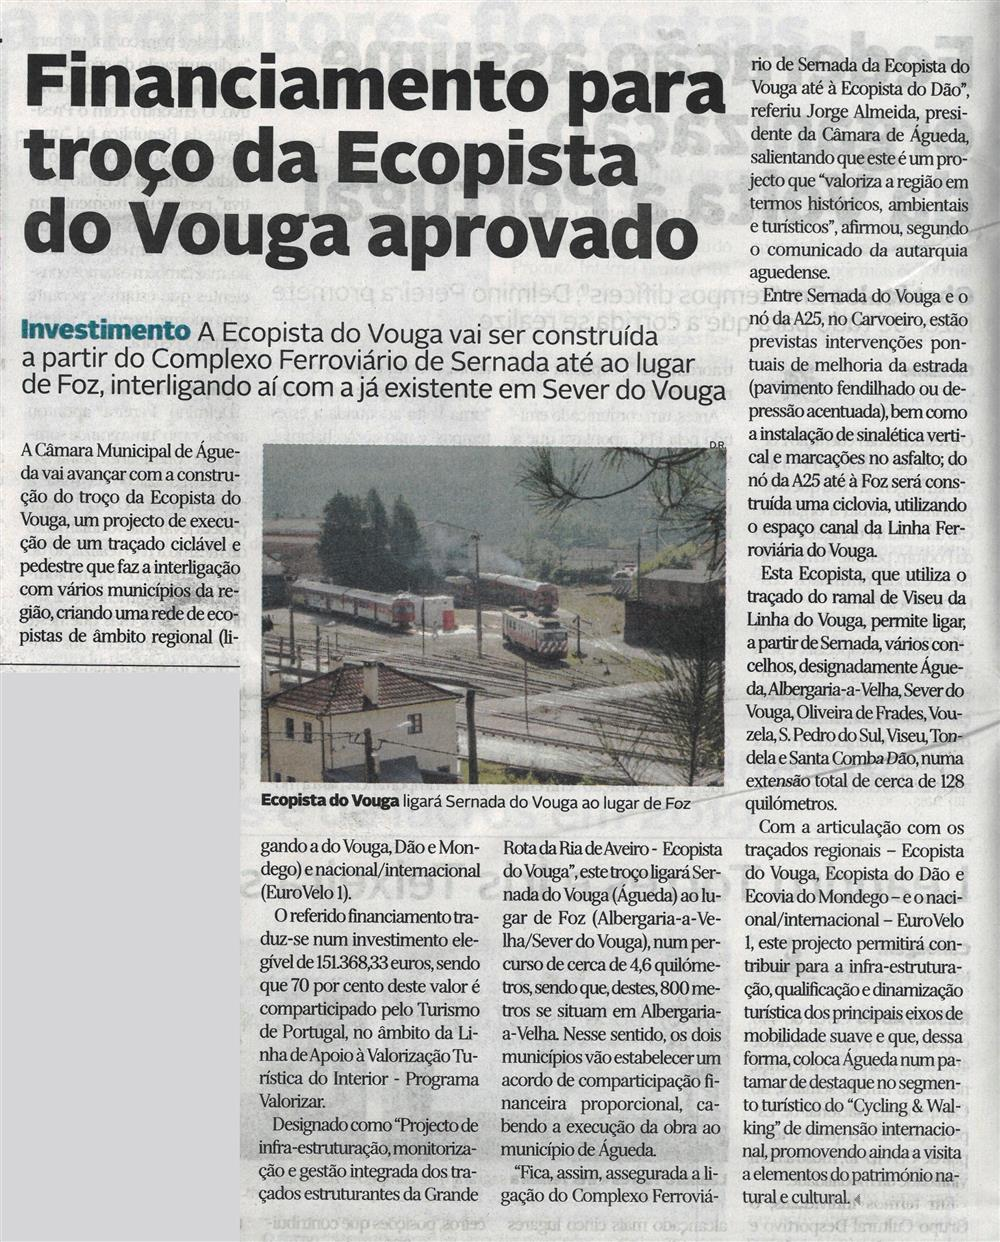 DA-18jul.'20-p.32-Financiamento para troço da Ecopista do Vouga aprovado.jpg